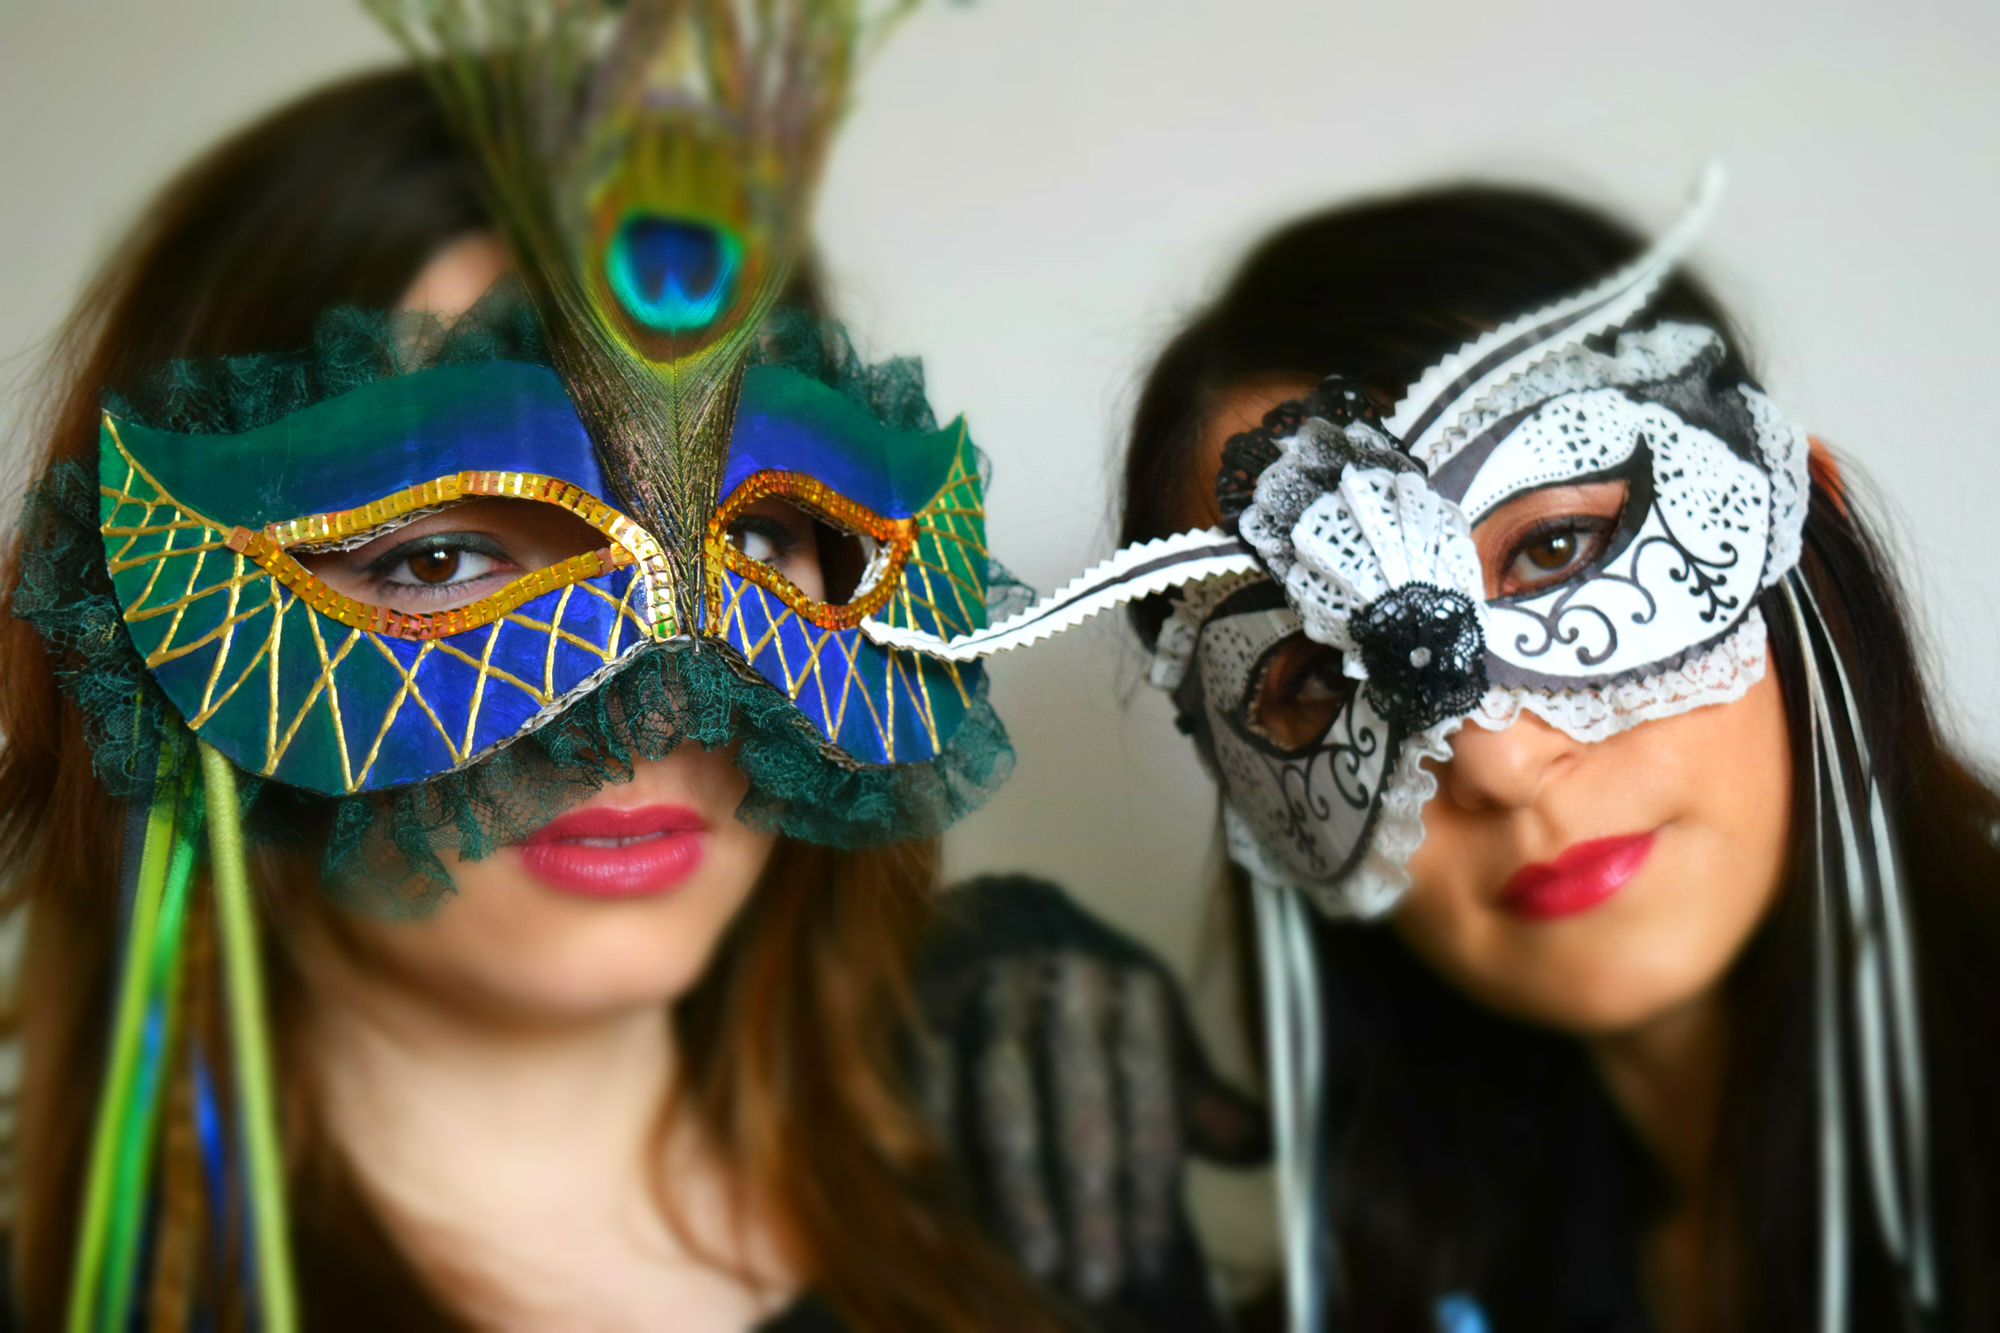 Giulia with Peacock mask and Ilaria with the Black & White mask